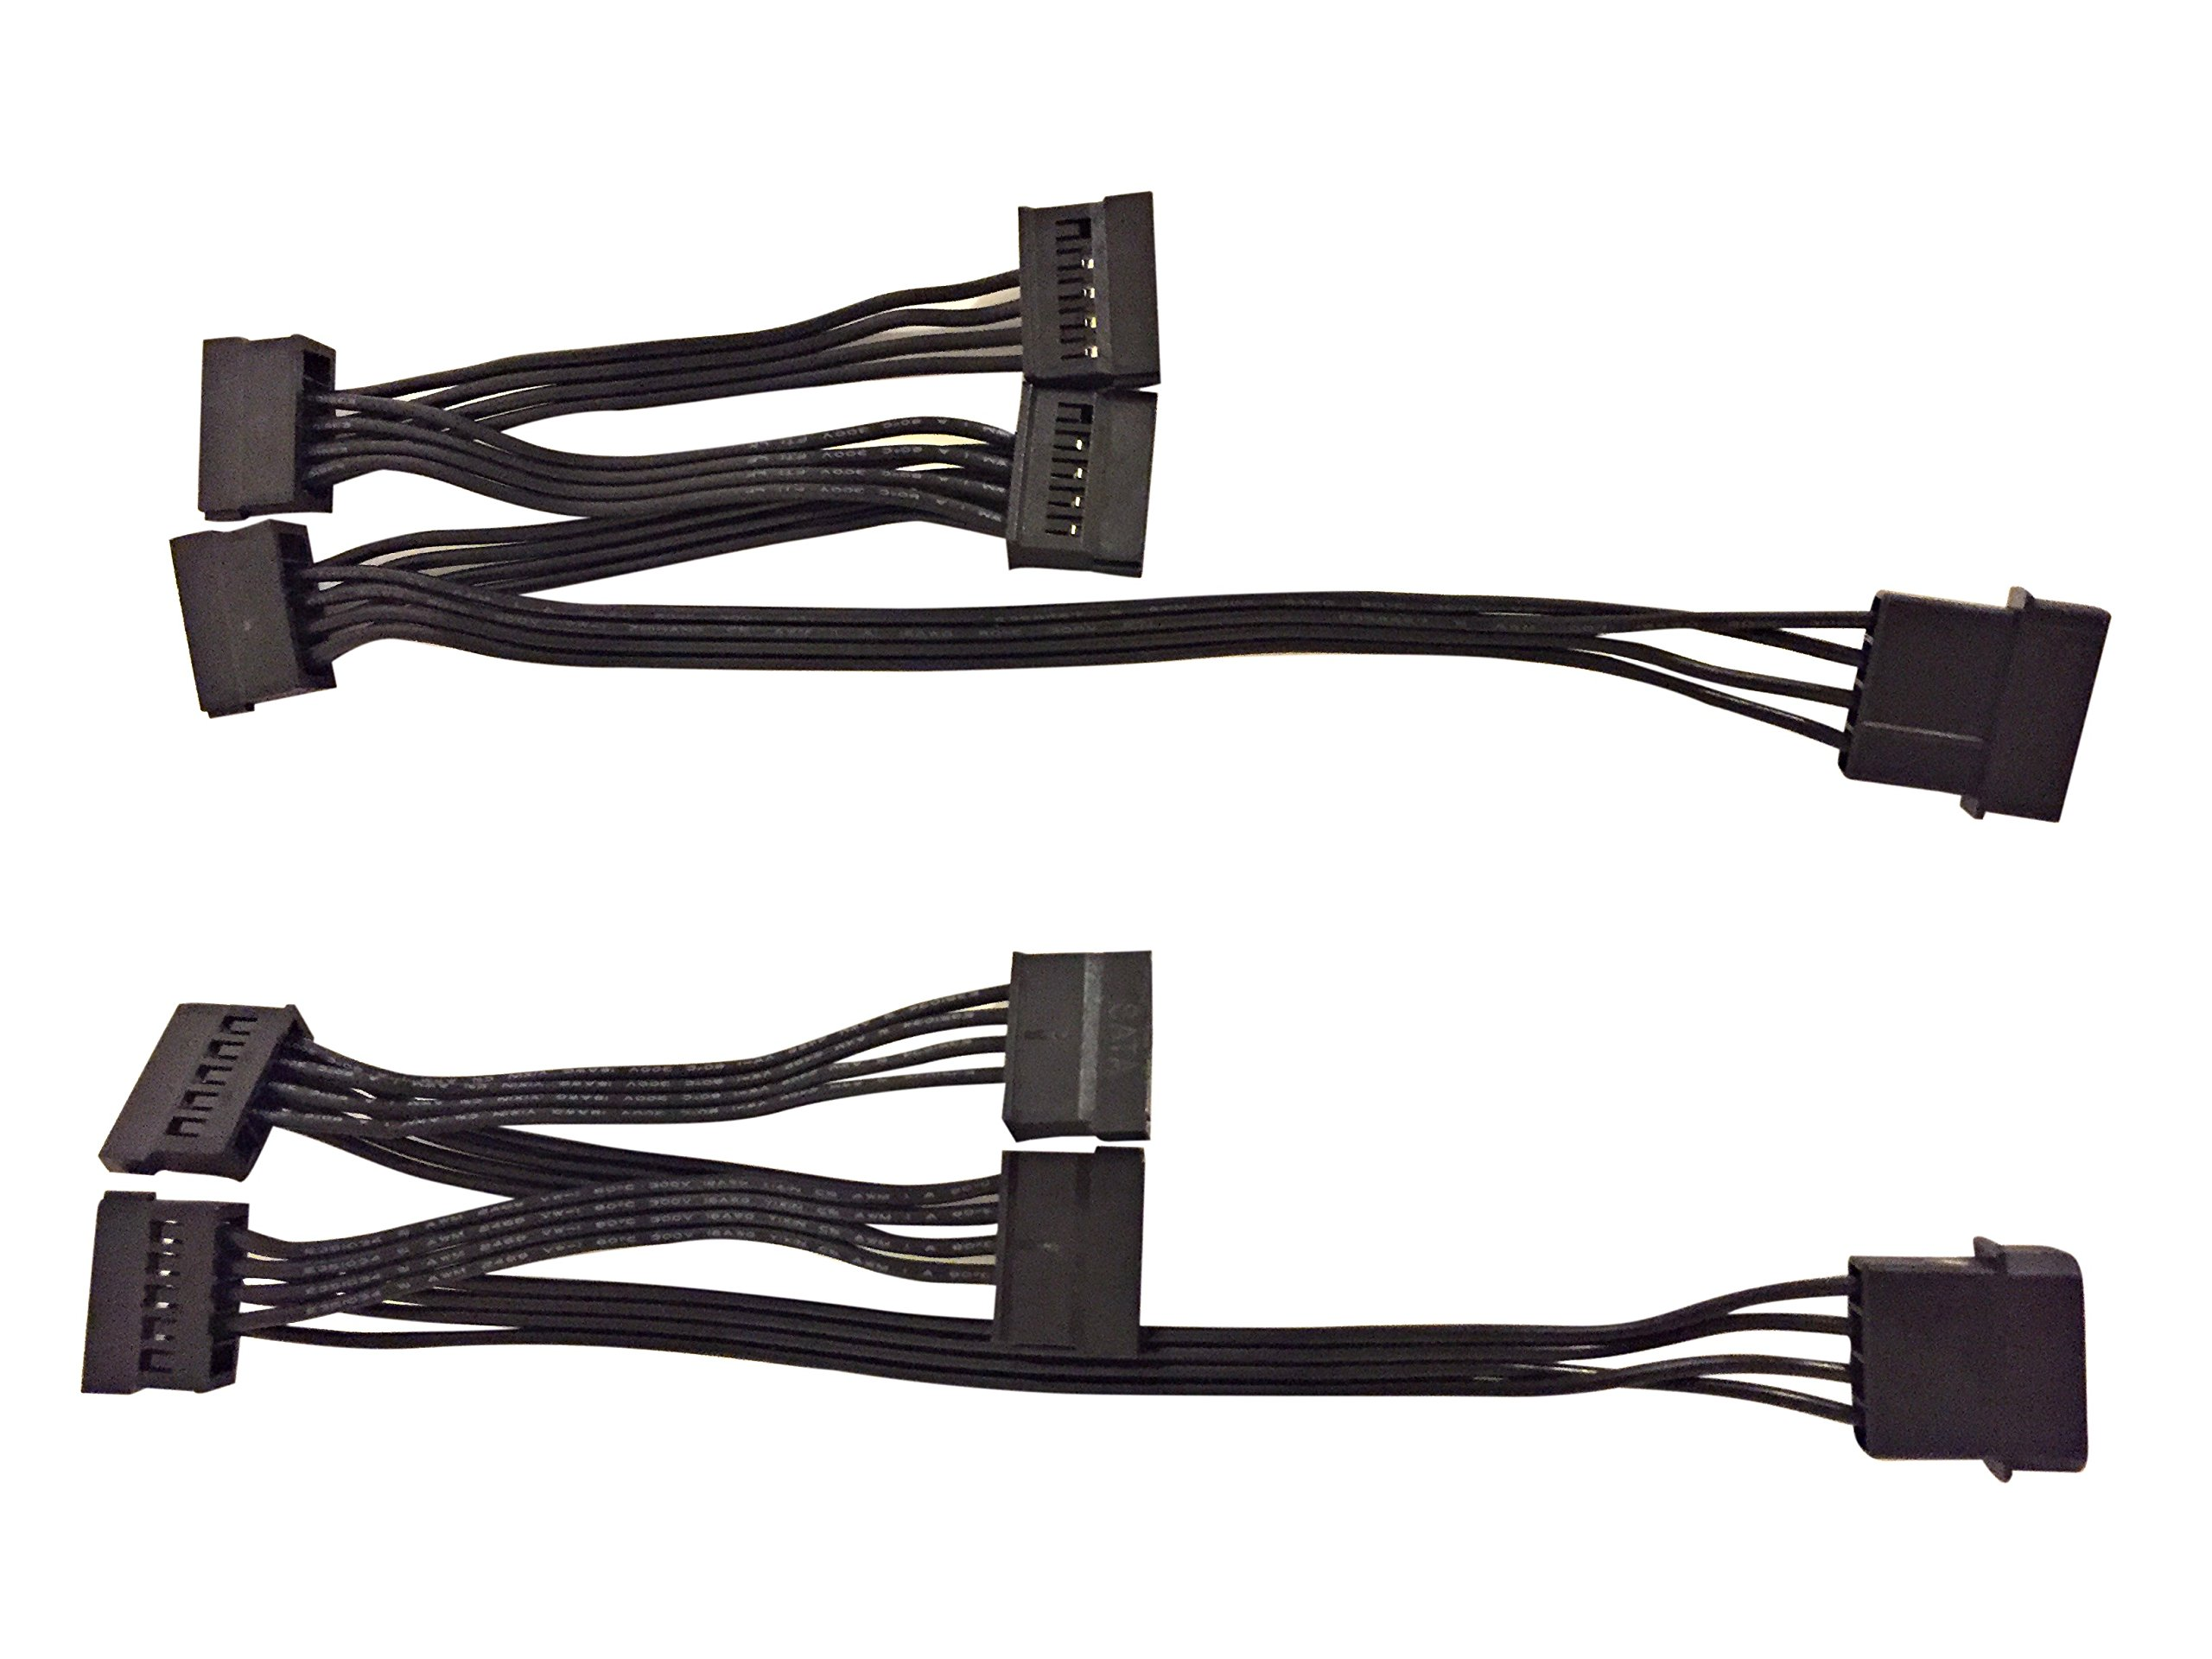 (2 pack) 4 Pin IDE Molex to 4 x 15 Pin SATA Power Y-Cable Adapter Splitter by Eyeboot (Image #4)